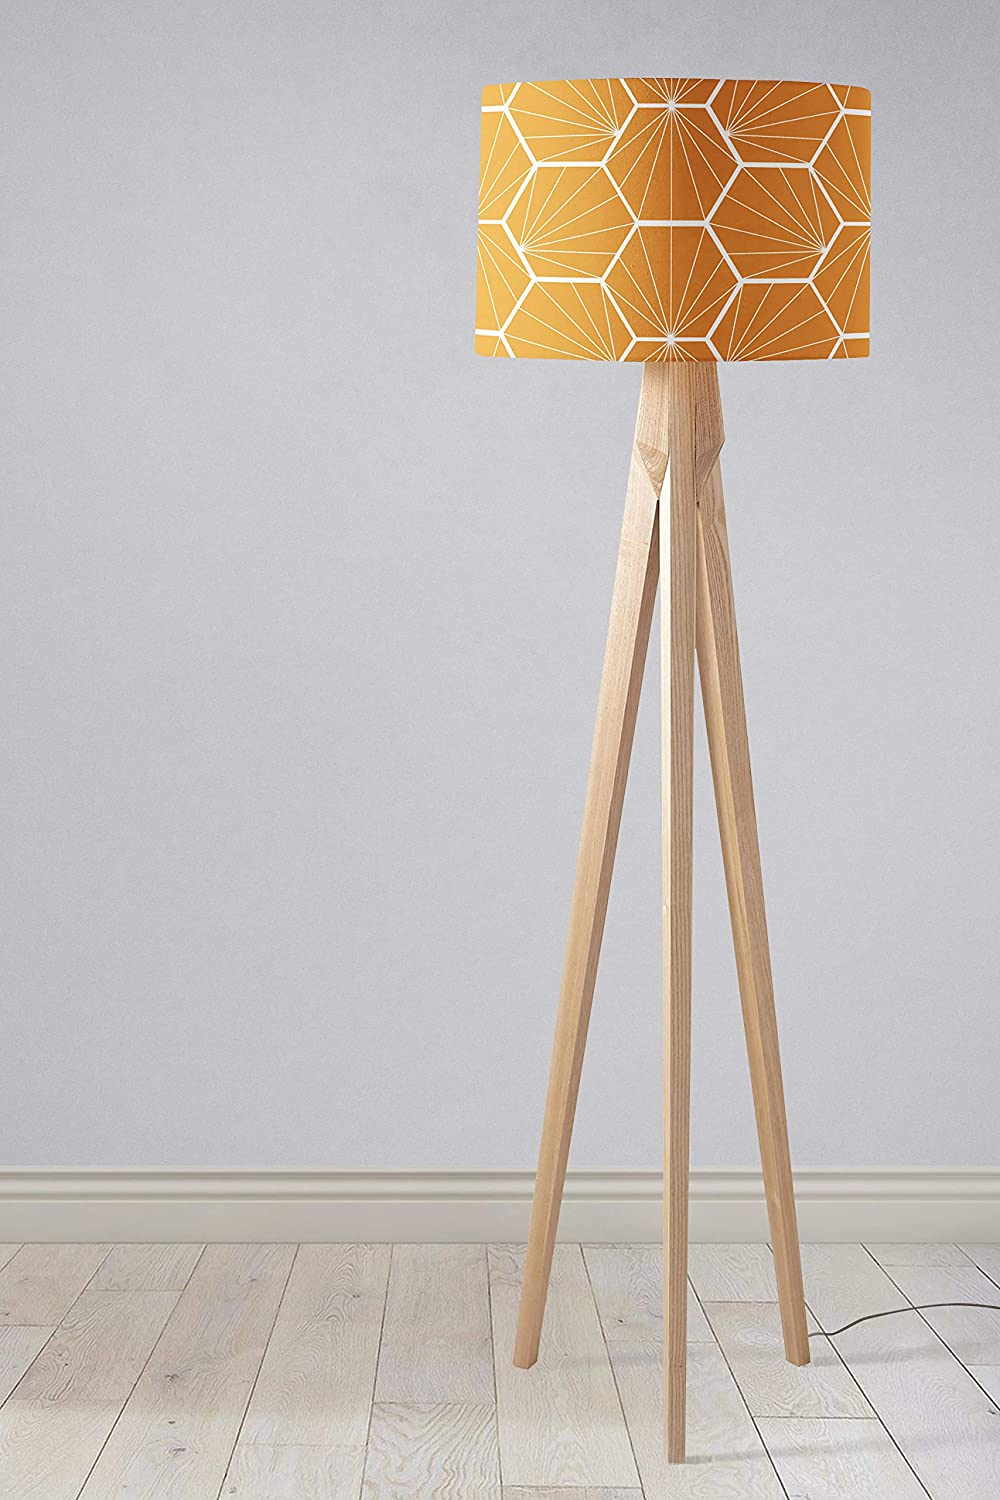 Butterscotch Yellow Lampshade Geometric Hexagon Ceiling light shade or Table lamp